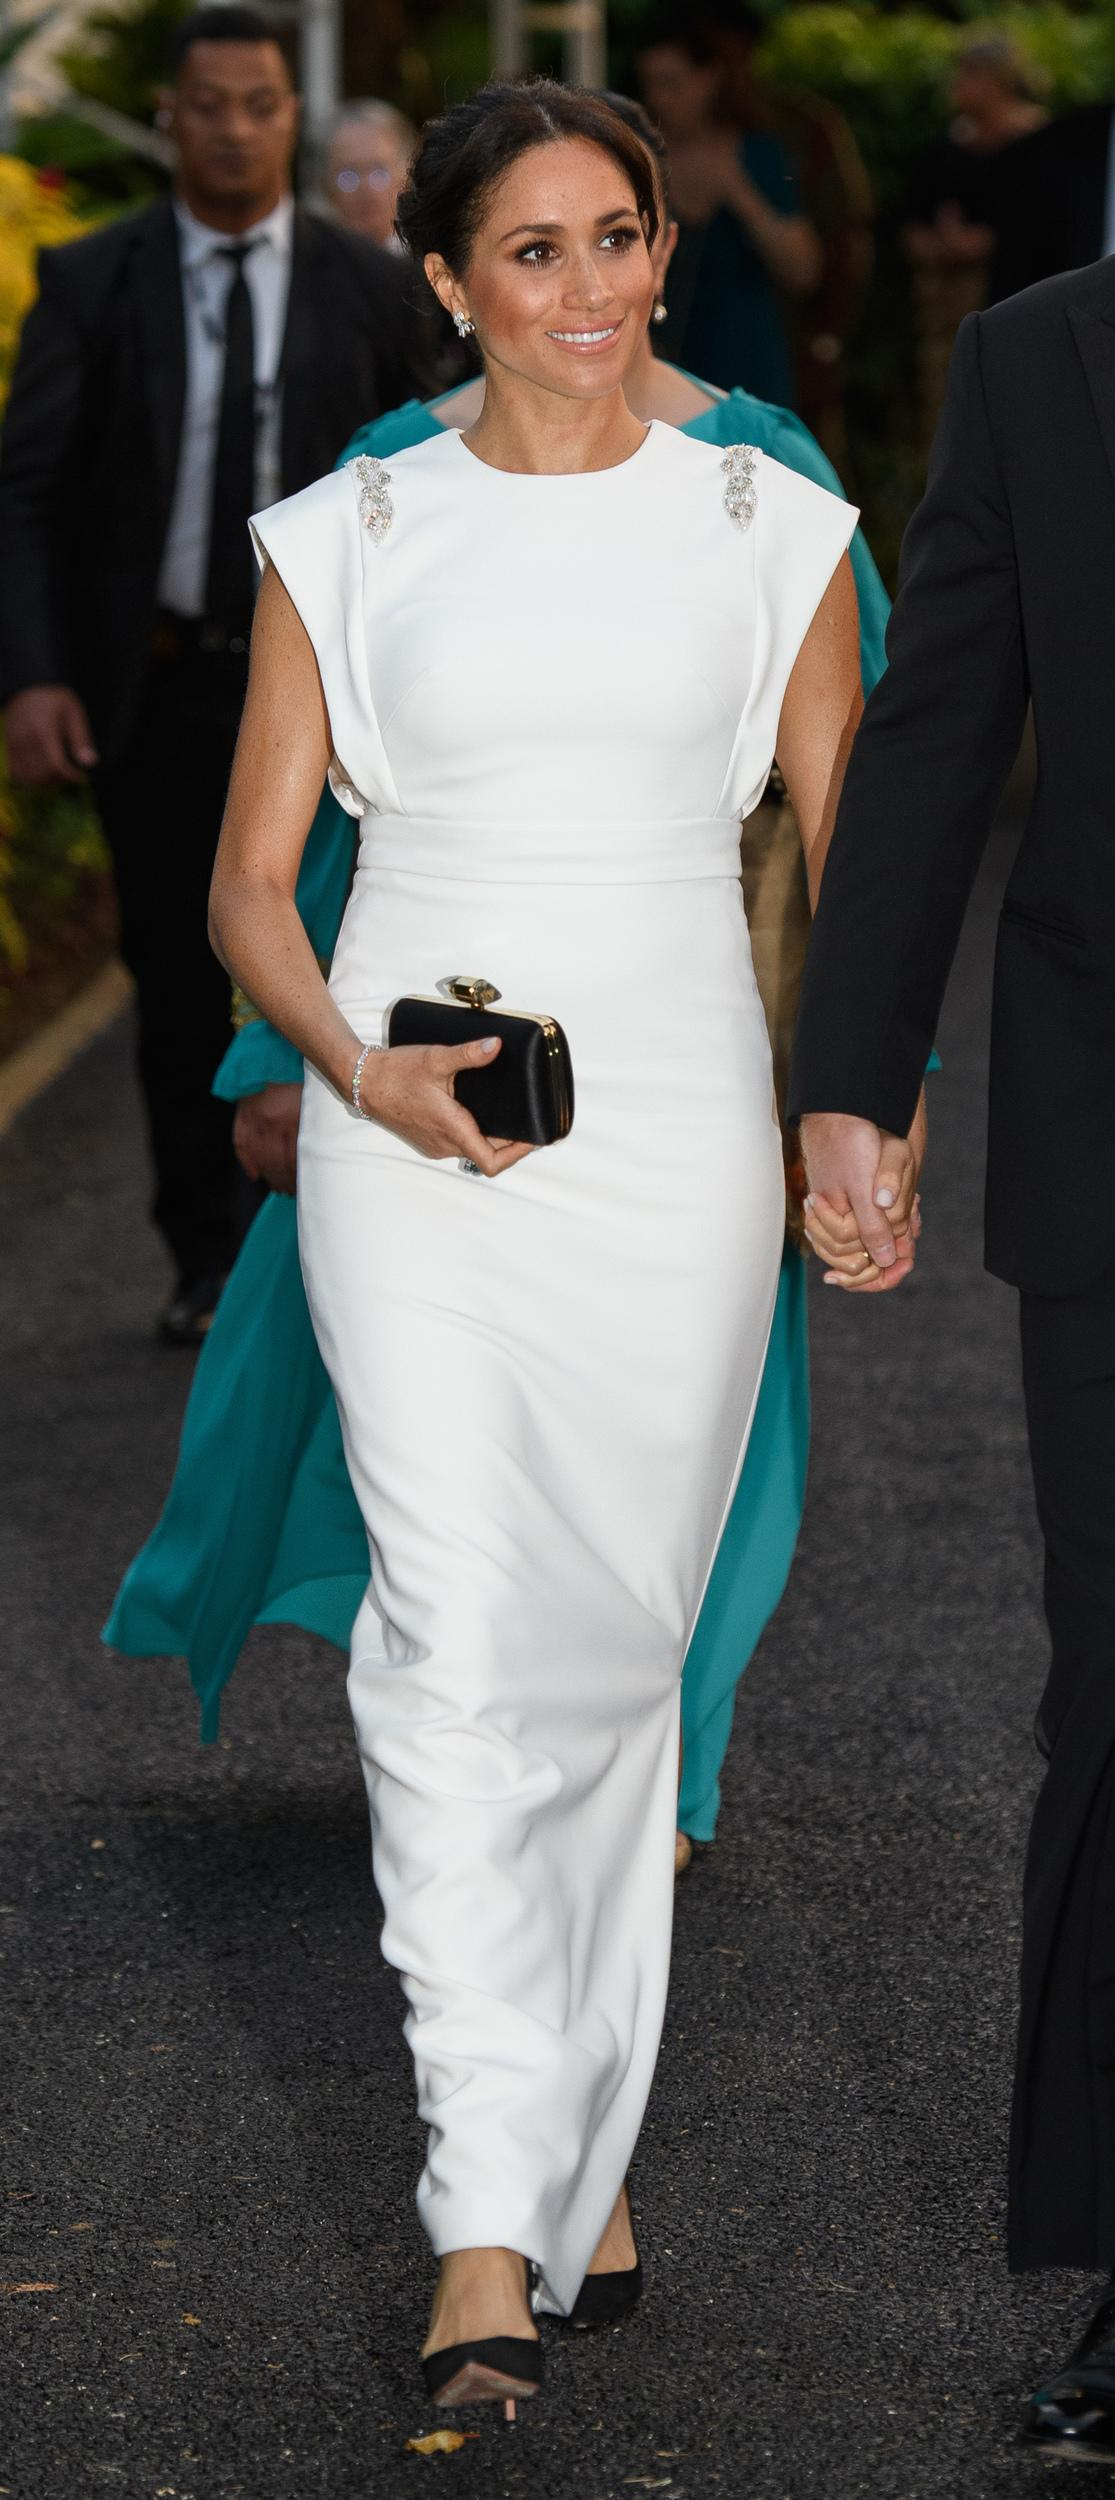 """Meghan looked glamorous as ever ina sleek white gown by Irish designer<a href=""""https://www.shopstyle.com/browse/womens-clothes/theia?gclid=EAIaIQobChMImNGghuSh3gIVBVSGCh36_wFPEAAYASAAEgJ75fD_BwE&jap=1t1&jcpid=8a8ae4cd474ef76201476633c72107bc&jkId=gcp:se_34900:t_kwd-2842879895:ag_9846743997:cp_172830237:n_g:d_c:cr_58408612677:fi_&js=1&jsid=34900&jt=1&t=new&utm_campaign=Theia+-+Alpha&utm_content=58408612677&utm_id=t_kwd-2842879895:ag_9846743997:cp_172830237:n_g:d_c:fi_&utm_medium=PPC&utm_source=Adwords&utm_term=theia"""" target=""""_blank"""">Theia</a>to attend a black-tie reception with the King and Queen of Tonga."""